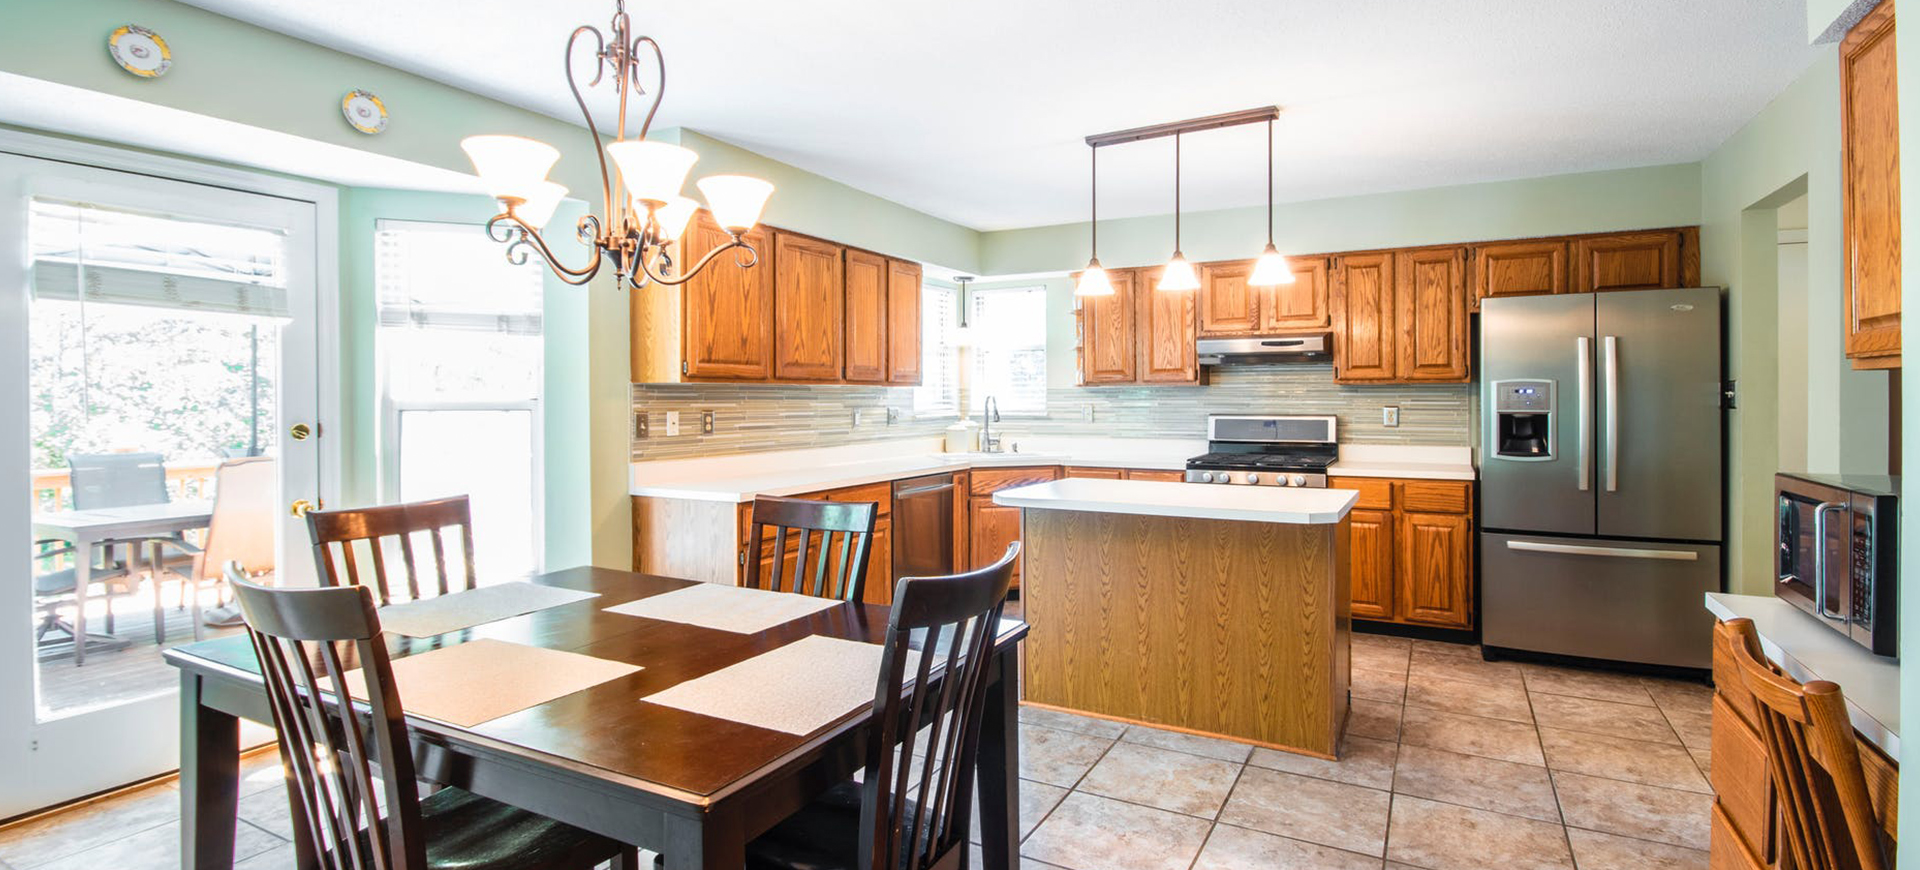 Kitchen of your Dreams image